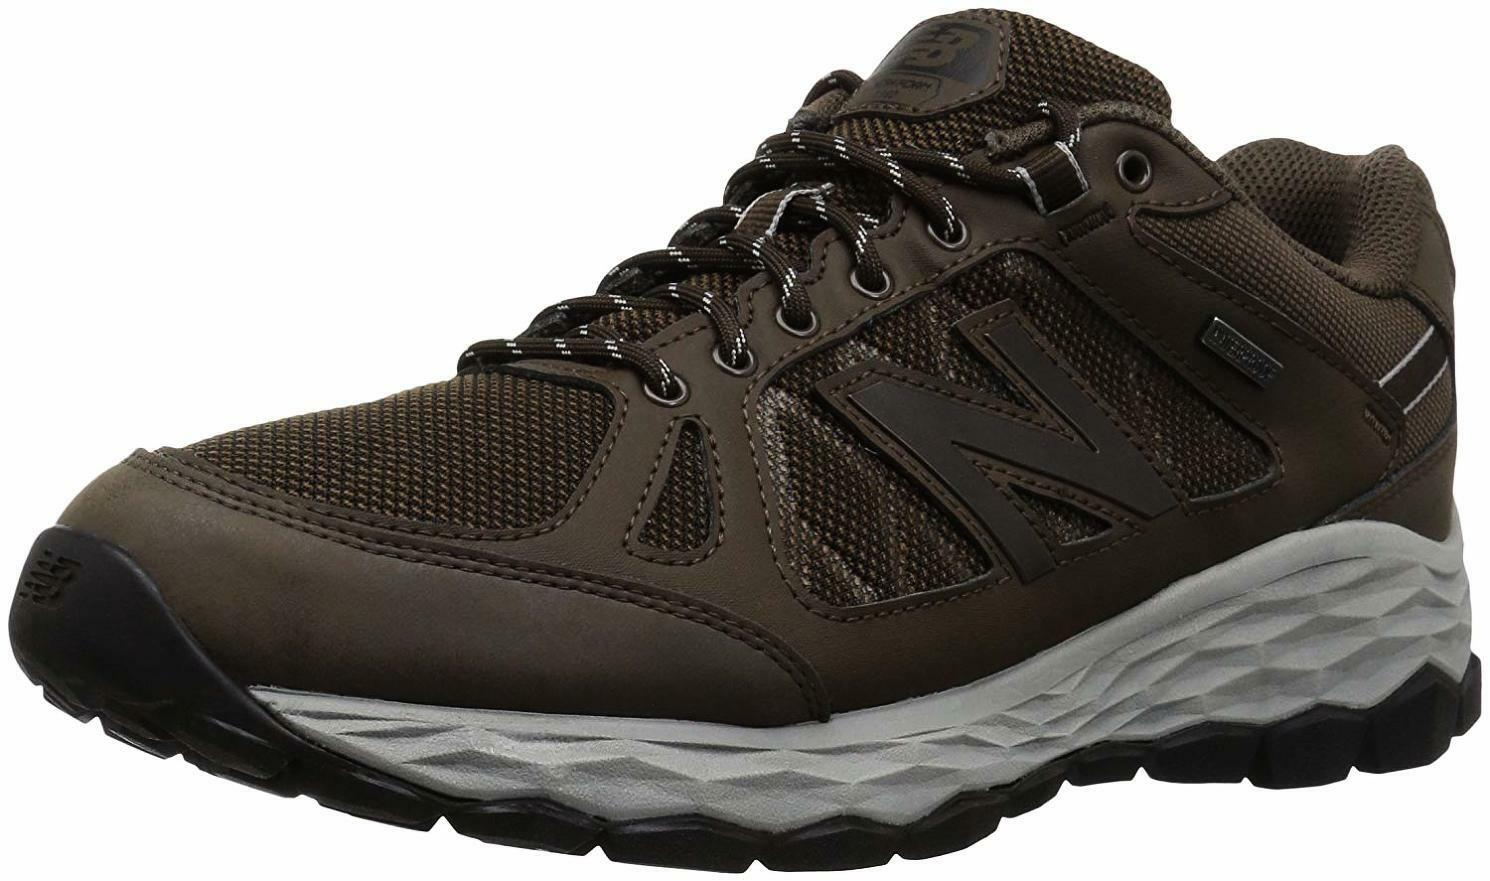 New Balance Men's 13501 Fresh Foam Walking shoes - Choose SZ color